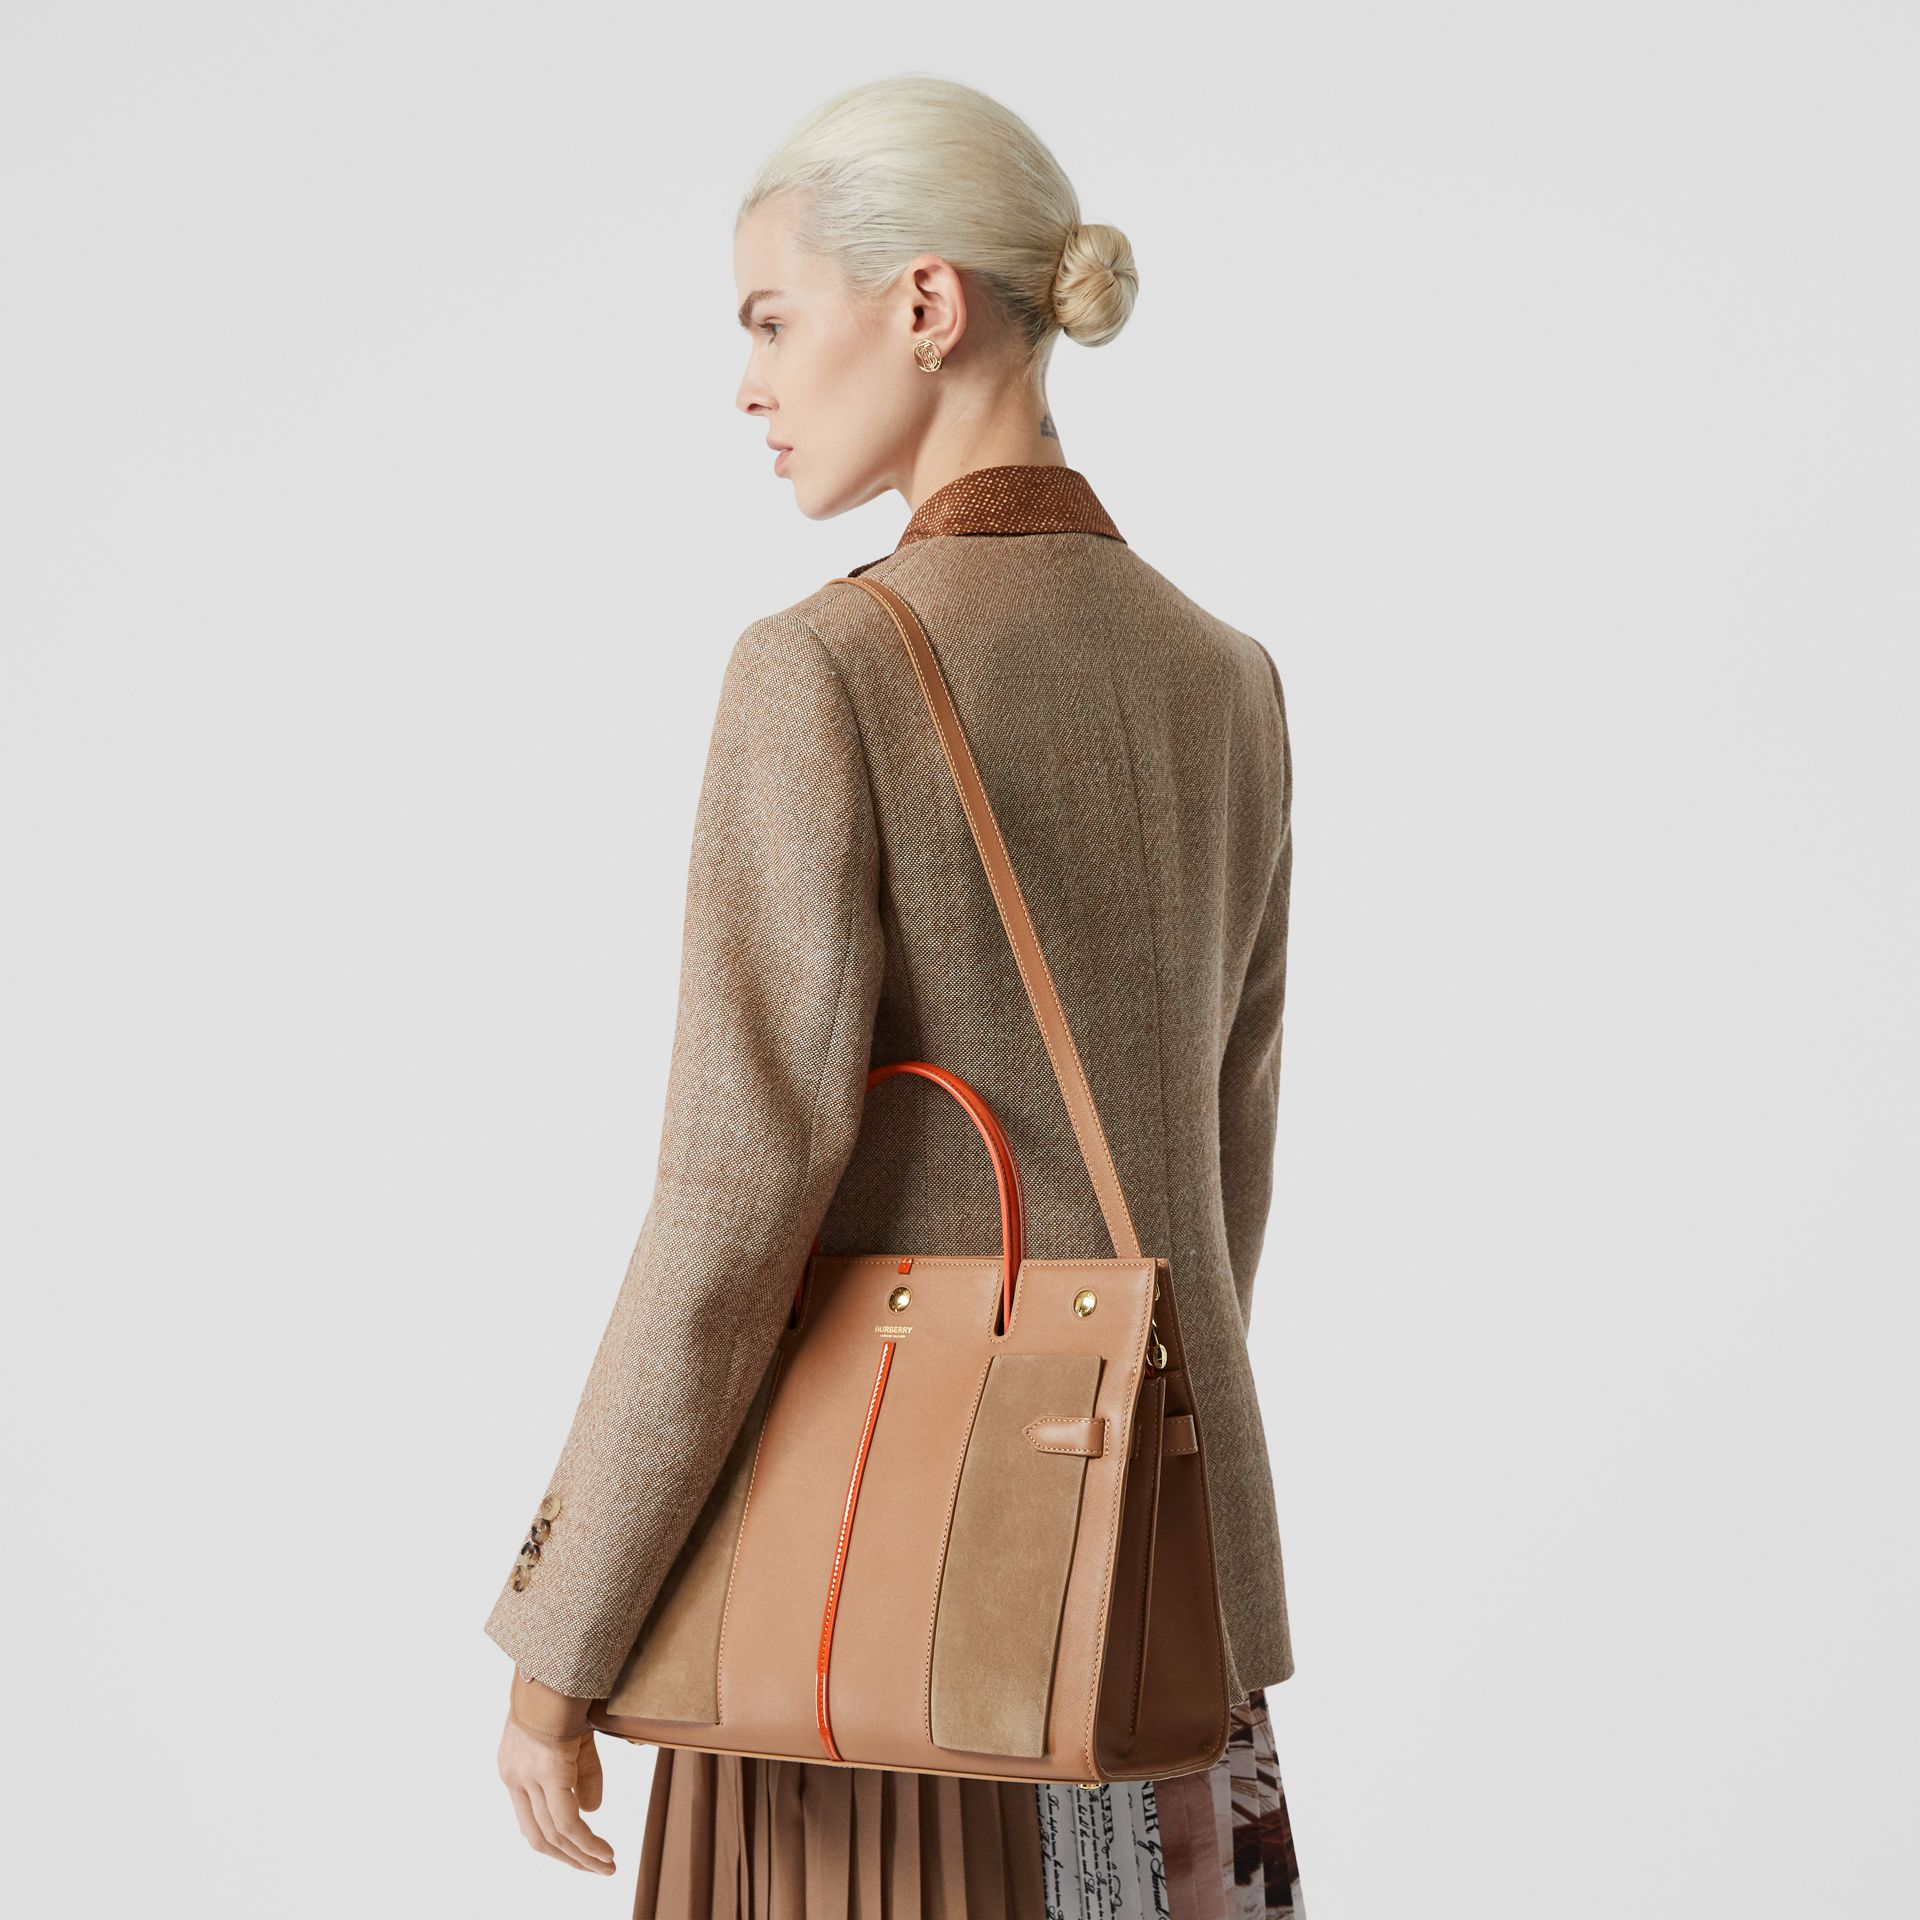 Medium Leather and Suede Title Bag in Warm Camel - Women | Burberry Australia - gallery image 2